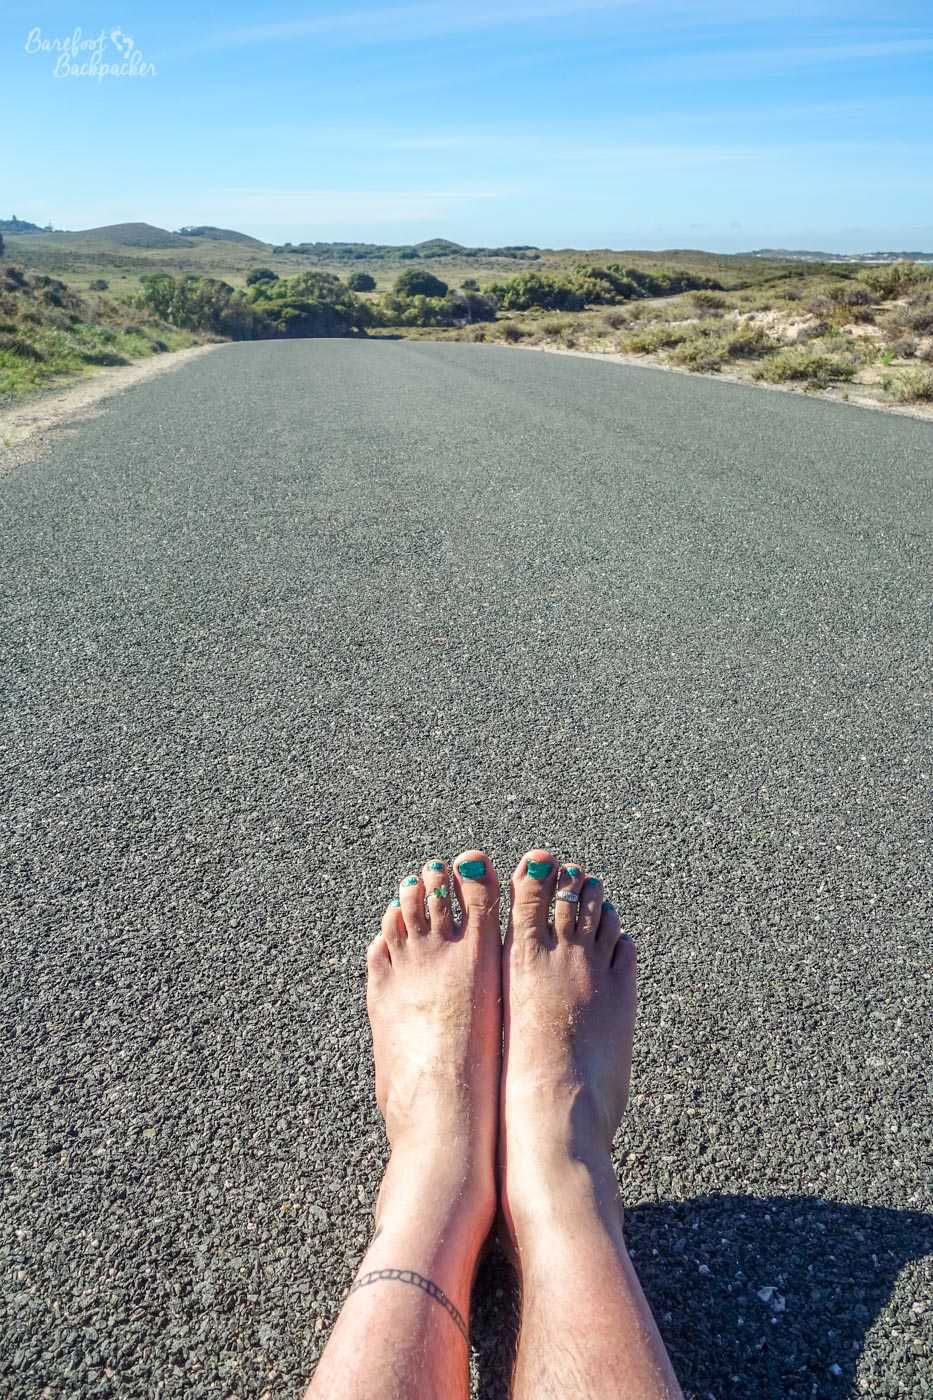 An empty tarmac road on Rottnest Island, no people or bicyclists about. The road disappears into the distance over a slight hill. There's grassland to either side. In the centre of the shot, in the middle of the road, lie two bare feet, pointing upward, just resting with their heels on the tarmac.